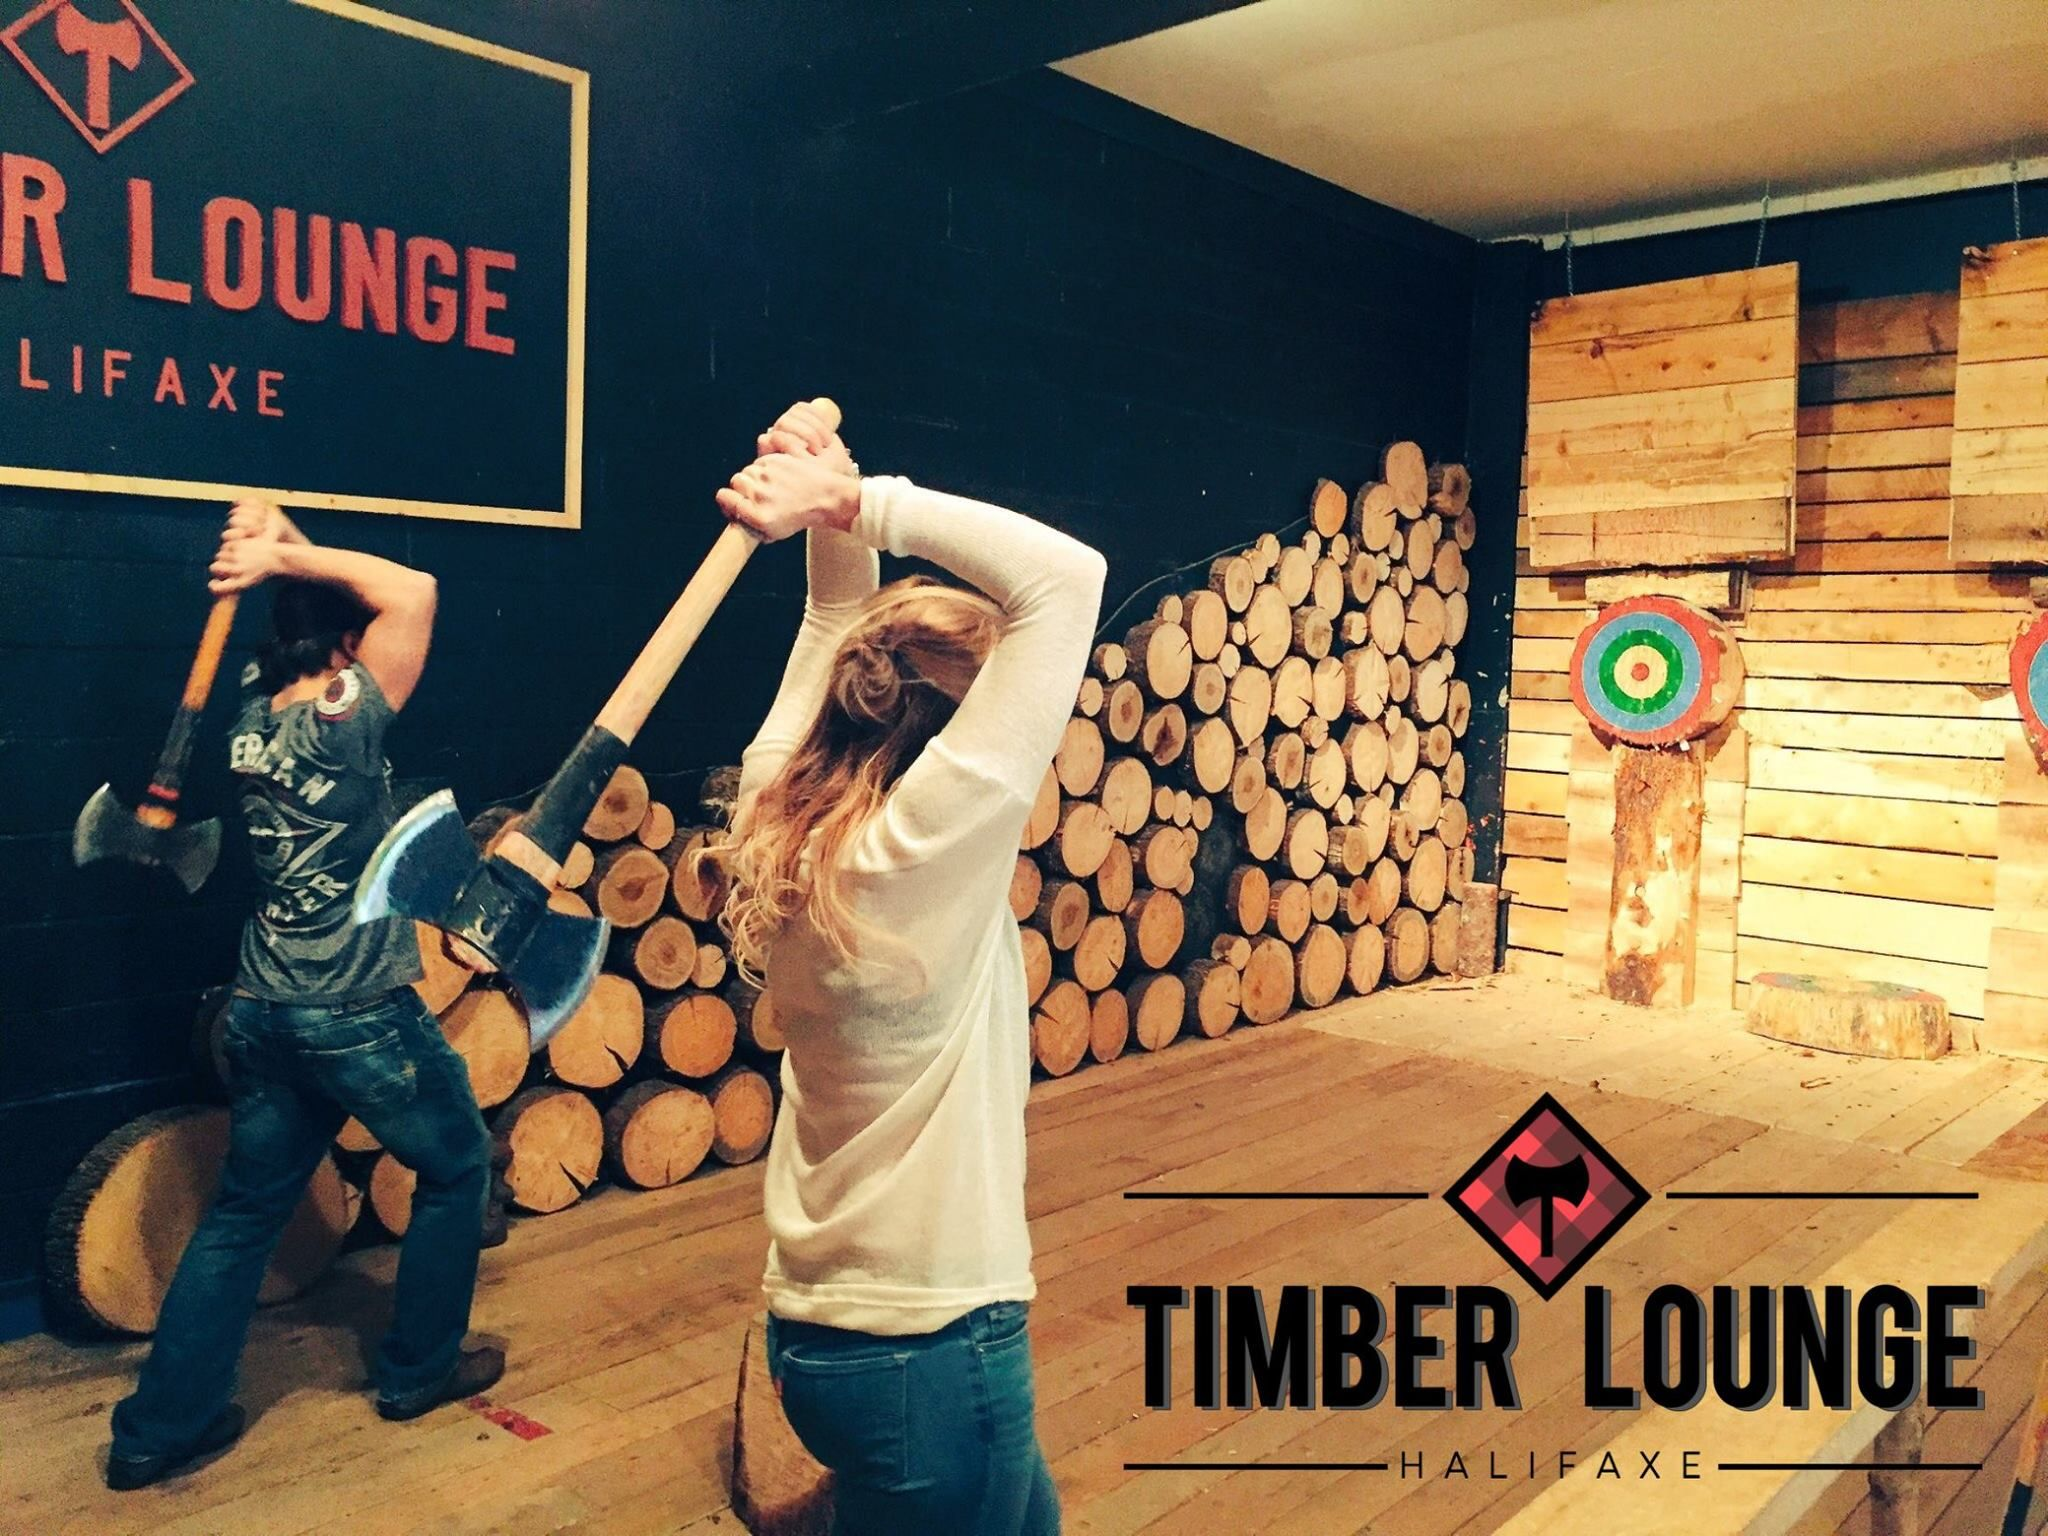 Inspired by our traditional lumberjack heritage, The